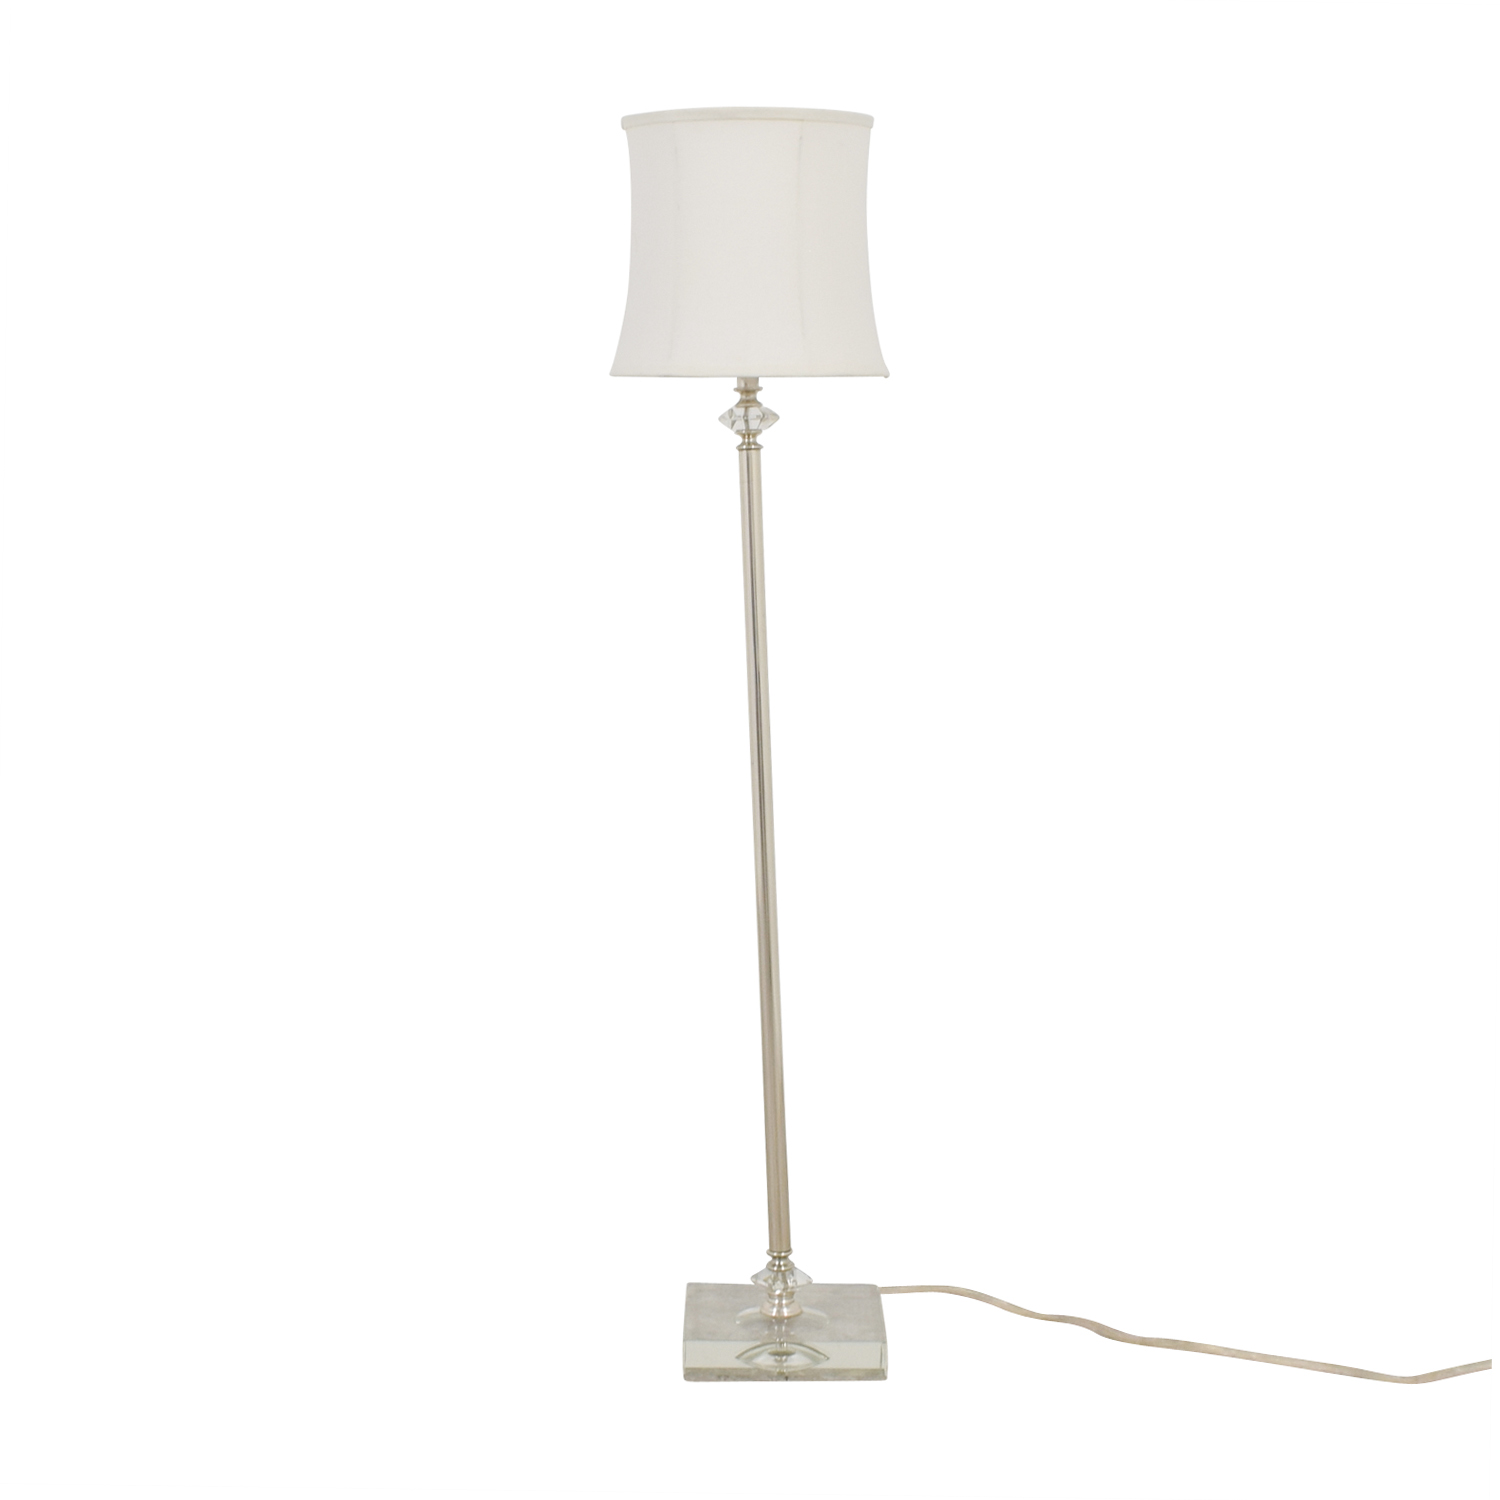 Pottery Barn Kids Lucite Floor Lamp Pottery Barn Kids